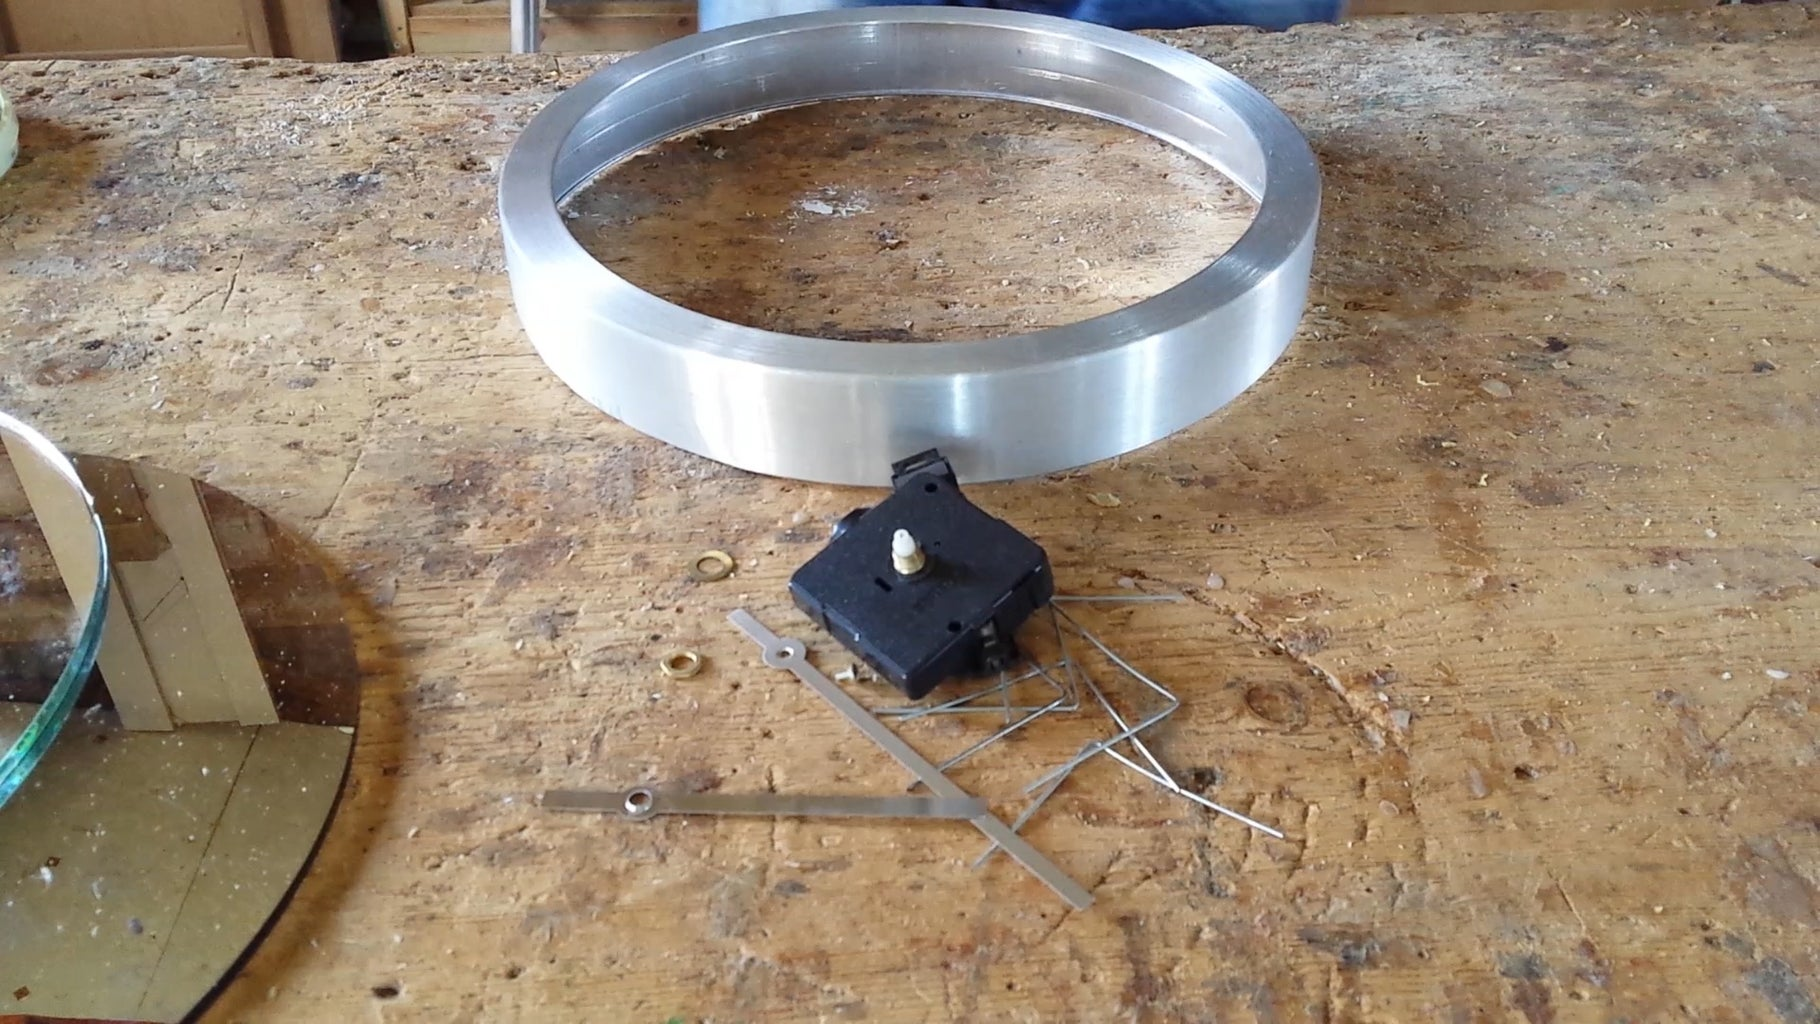 Disassemble the Old Clock and Prepare the Rim